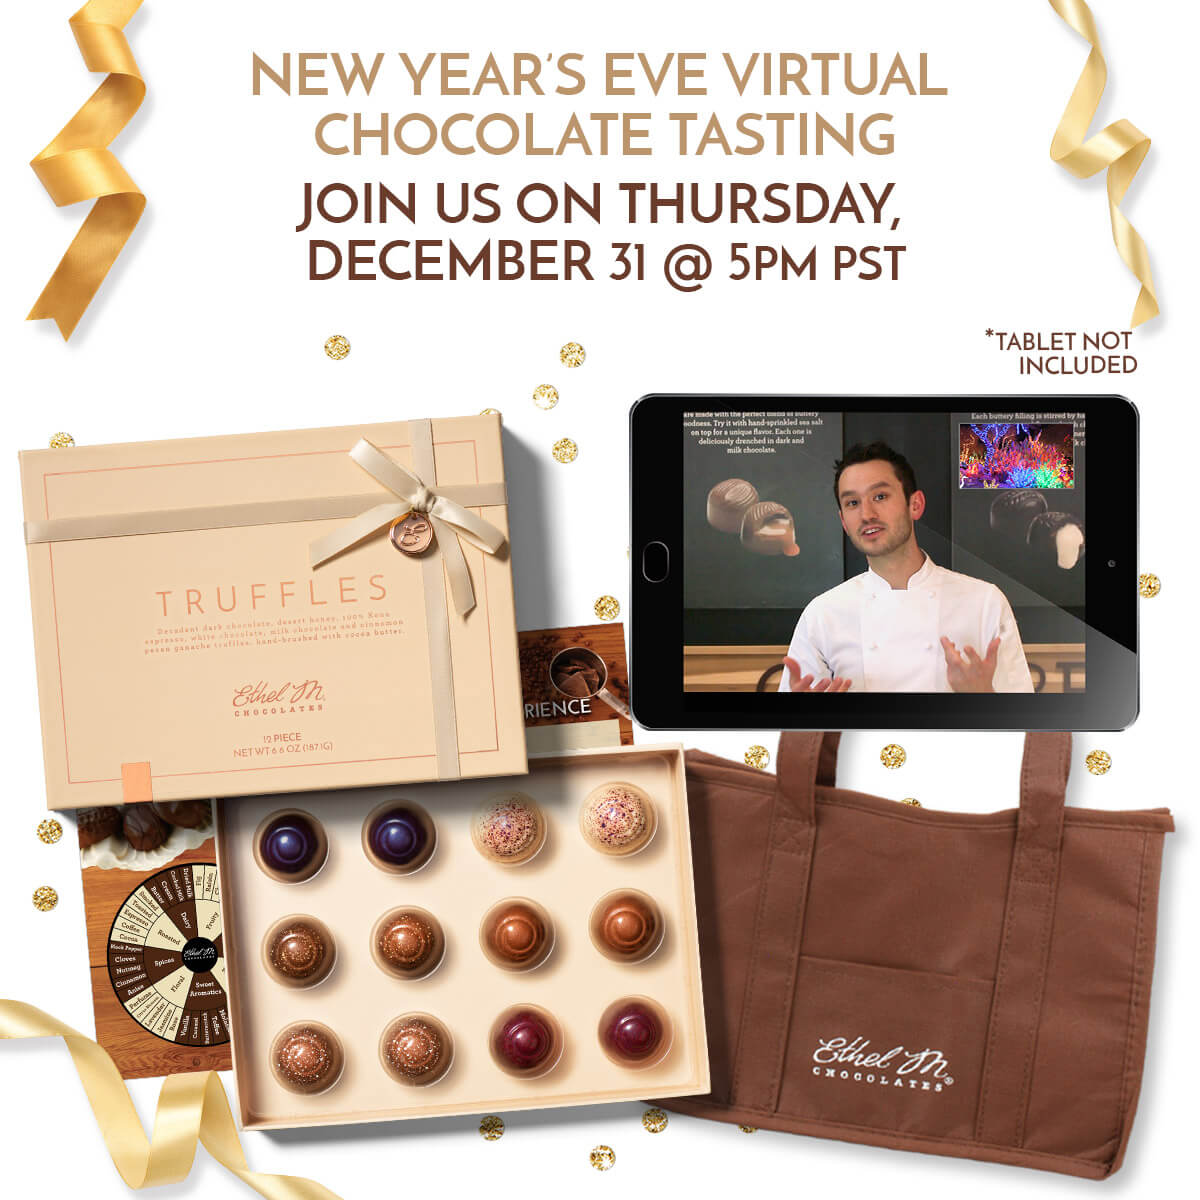 New Years Eve Virtual Tasting Package | December 31 @ 5pm pst